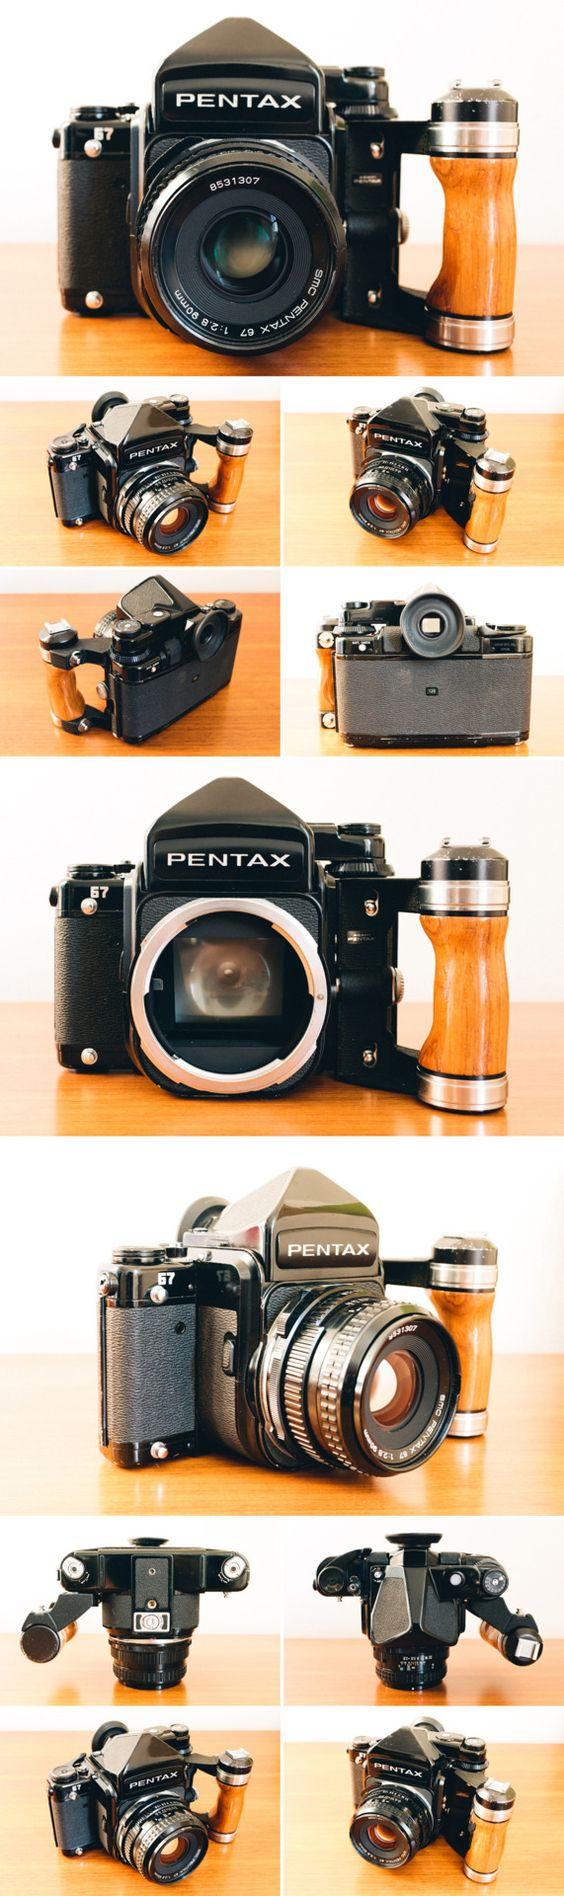 This is my film camera of choice right now.  SLR-Like operation with insane image quality.  Makes a Hasselblad seem like a point and shoot.